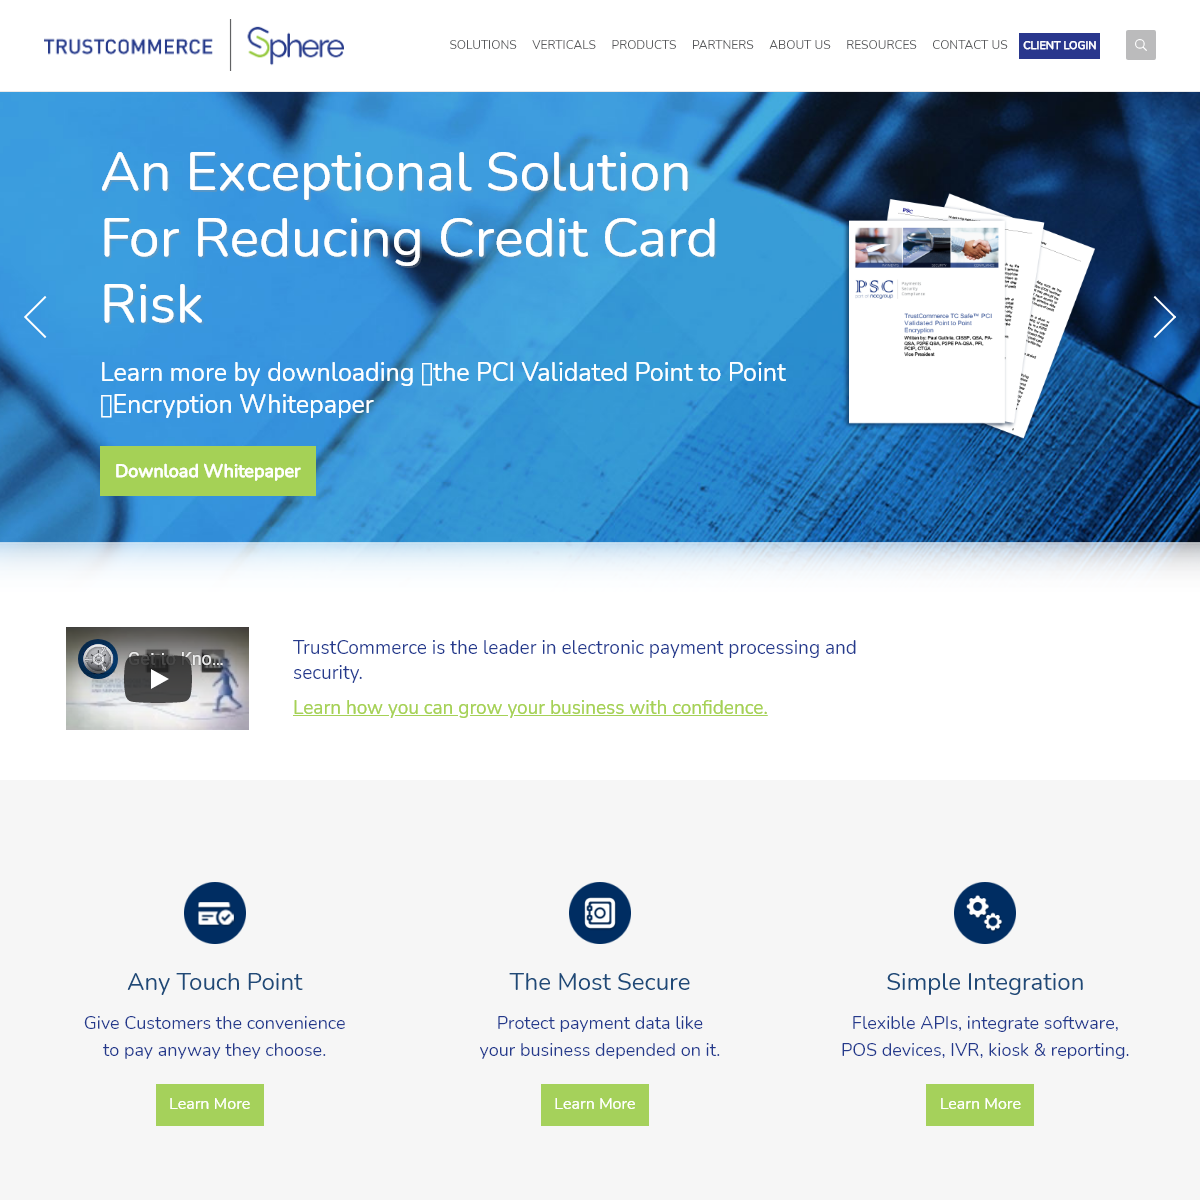 Secure Payment Processing Solutions - TrustCommerce